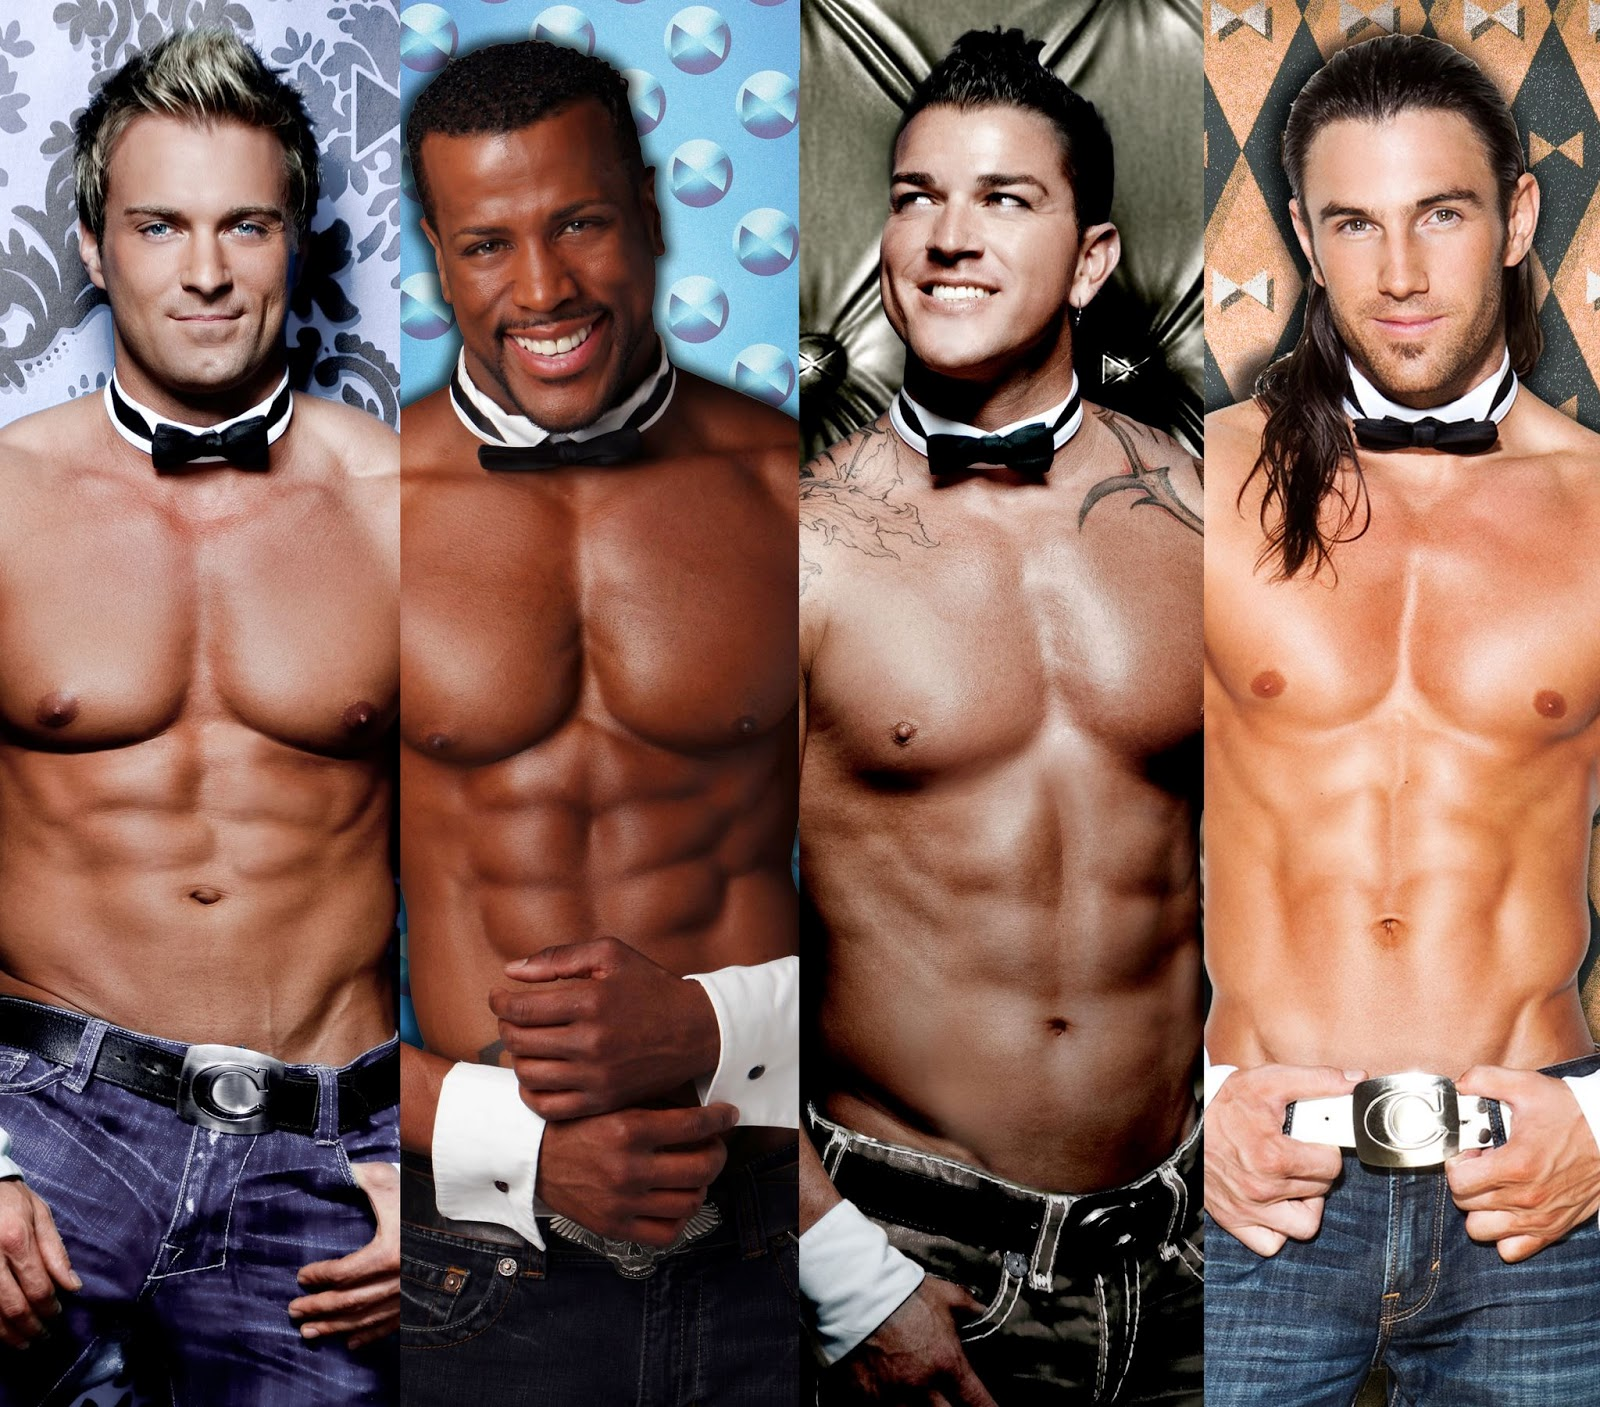 1000+ images about CHIPPENDALES!!!!!!! on Pinterest